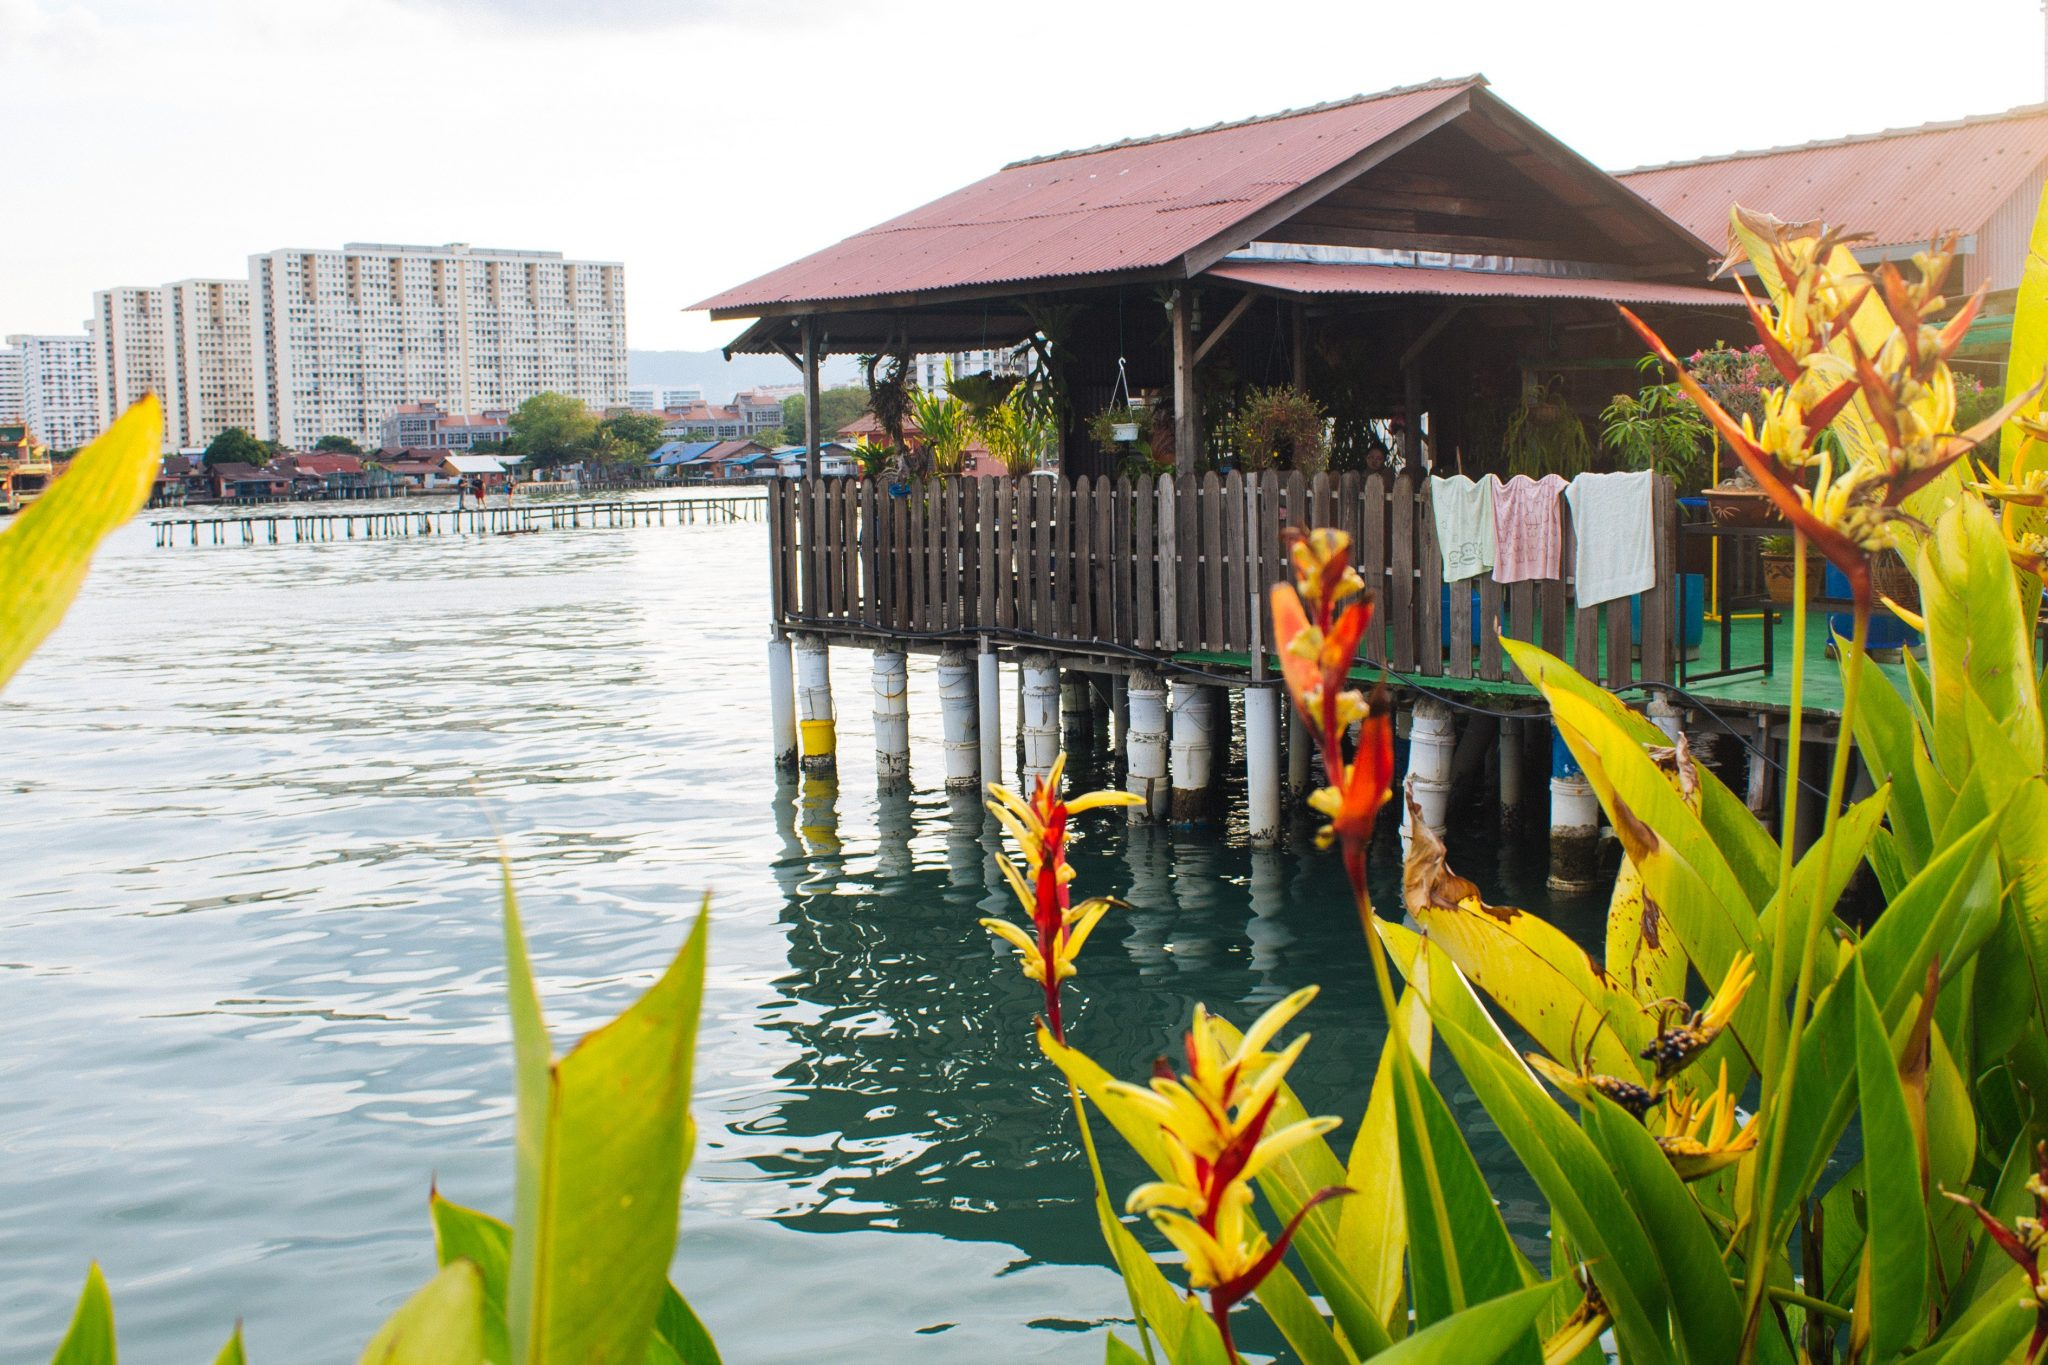 Clan Jetties in George Town, Penang Island, Malaysia | Asia Travel